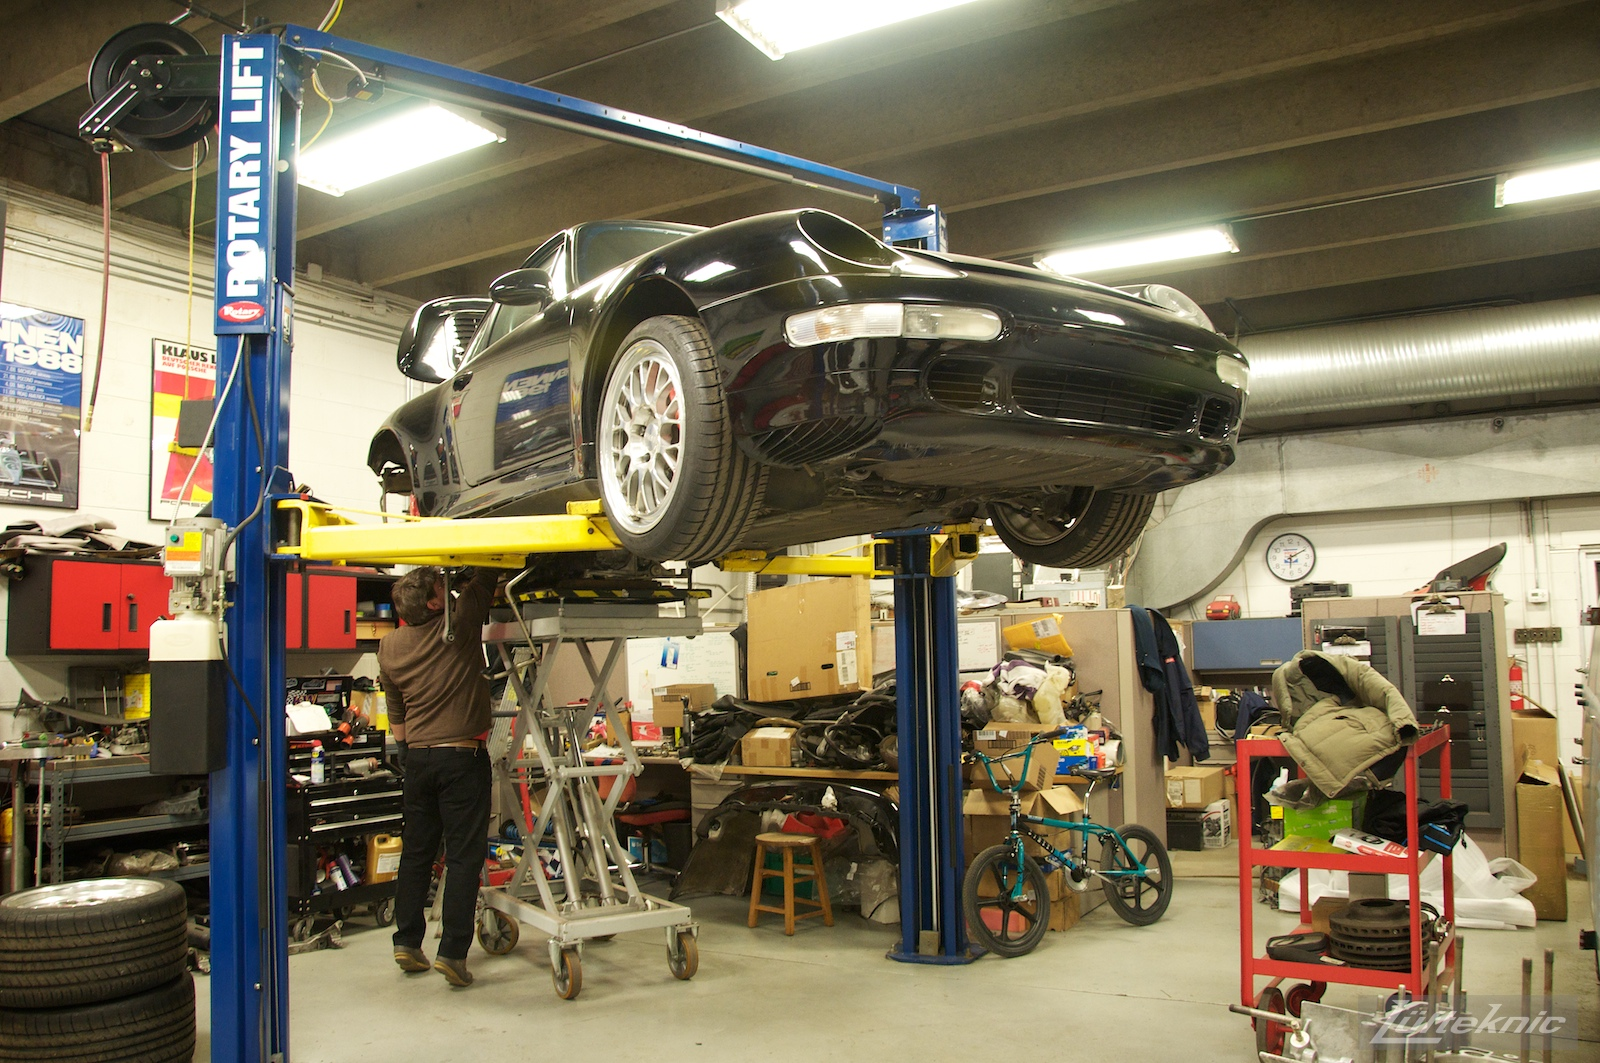 A shot from the front showing a 993 Turbo on a lift with the engine stand lifting the driveline into the car